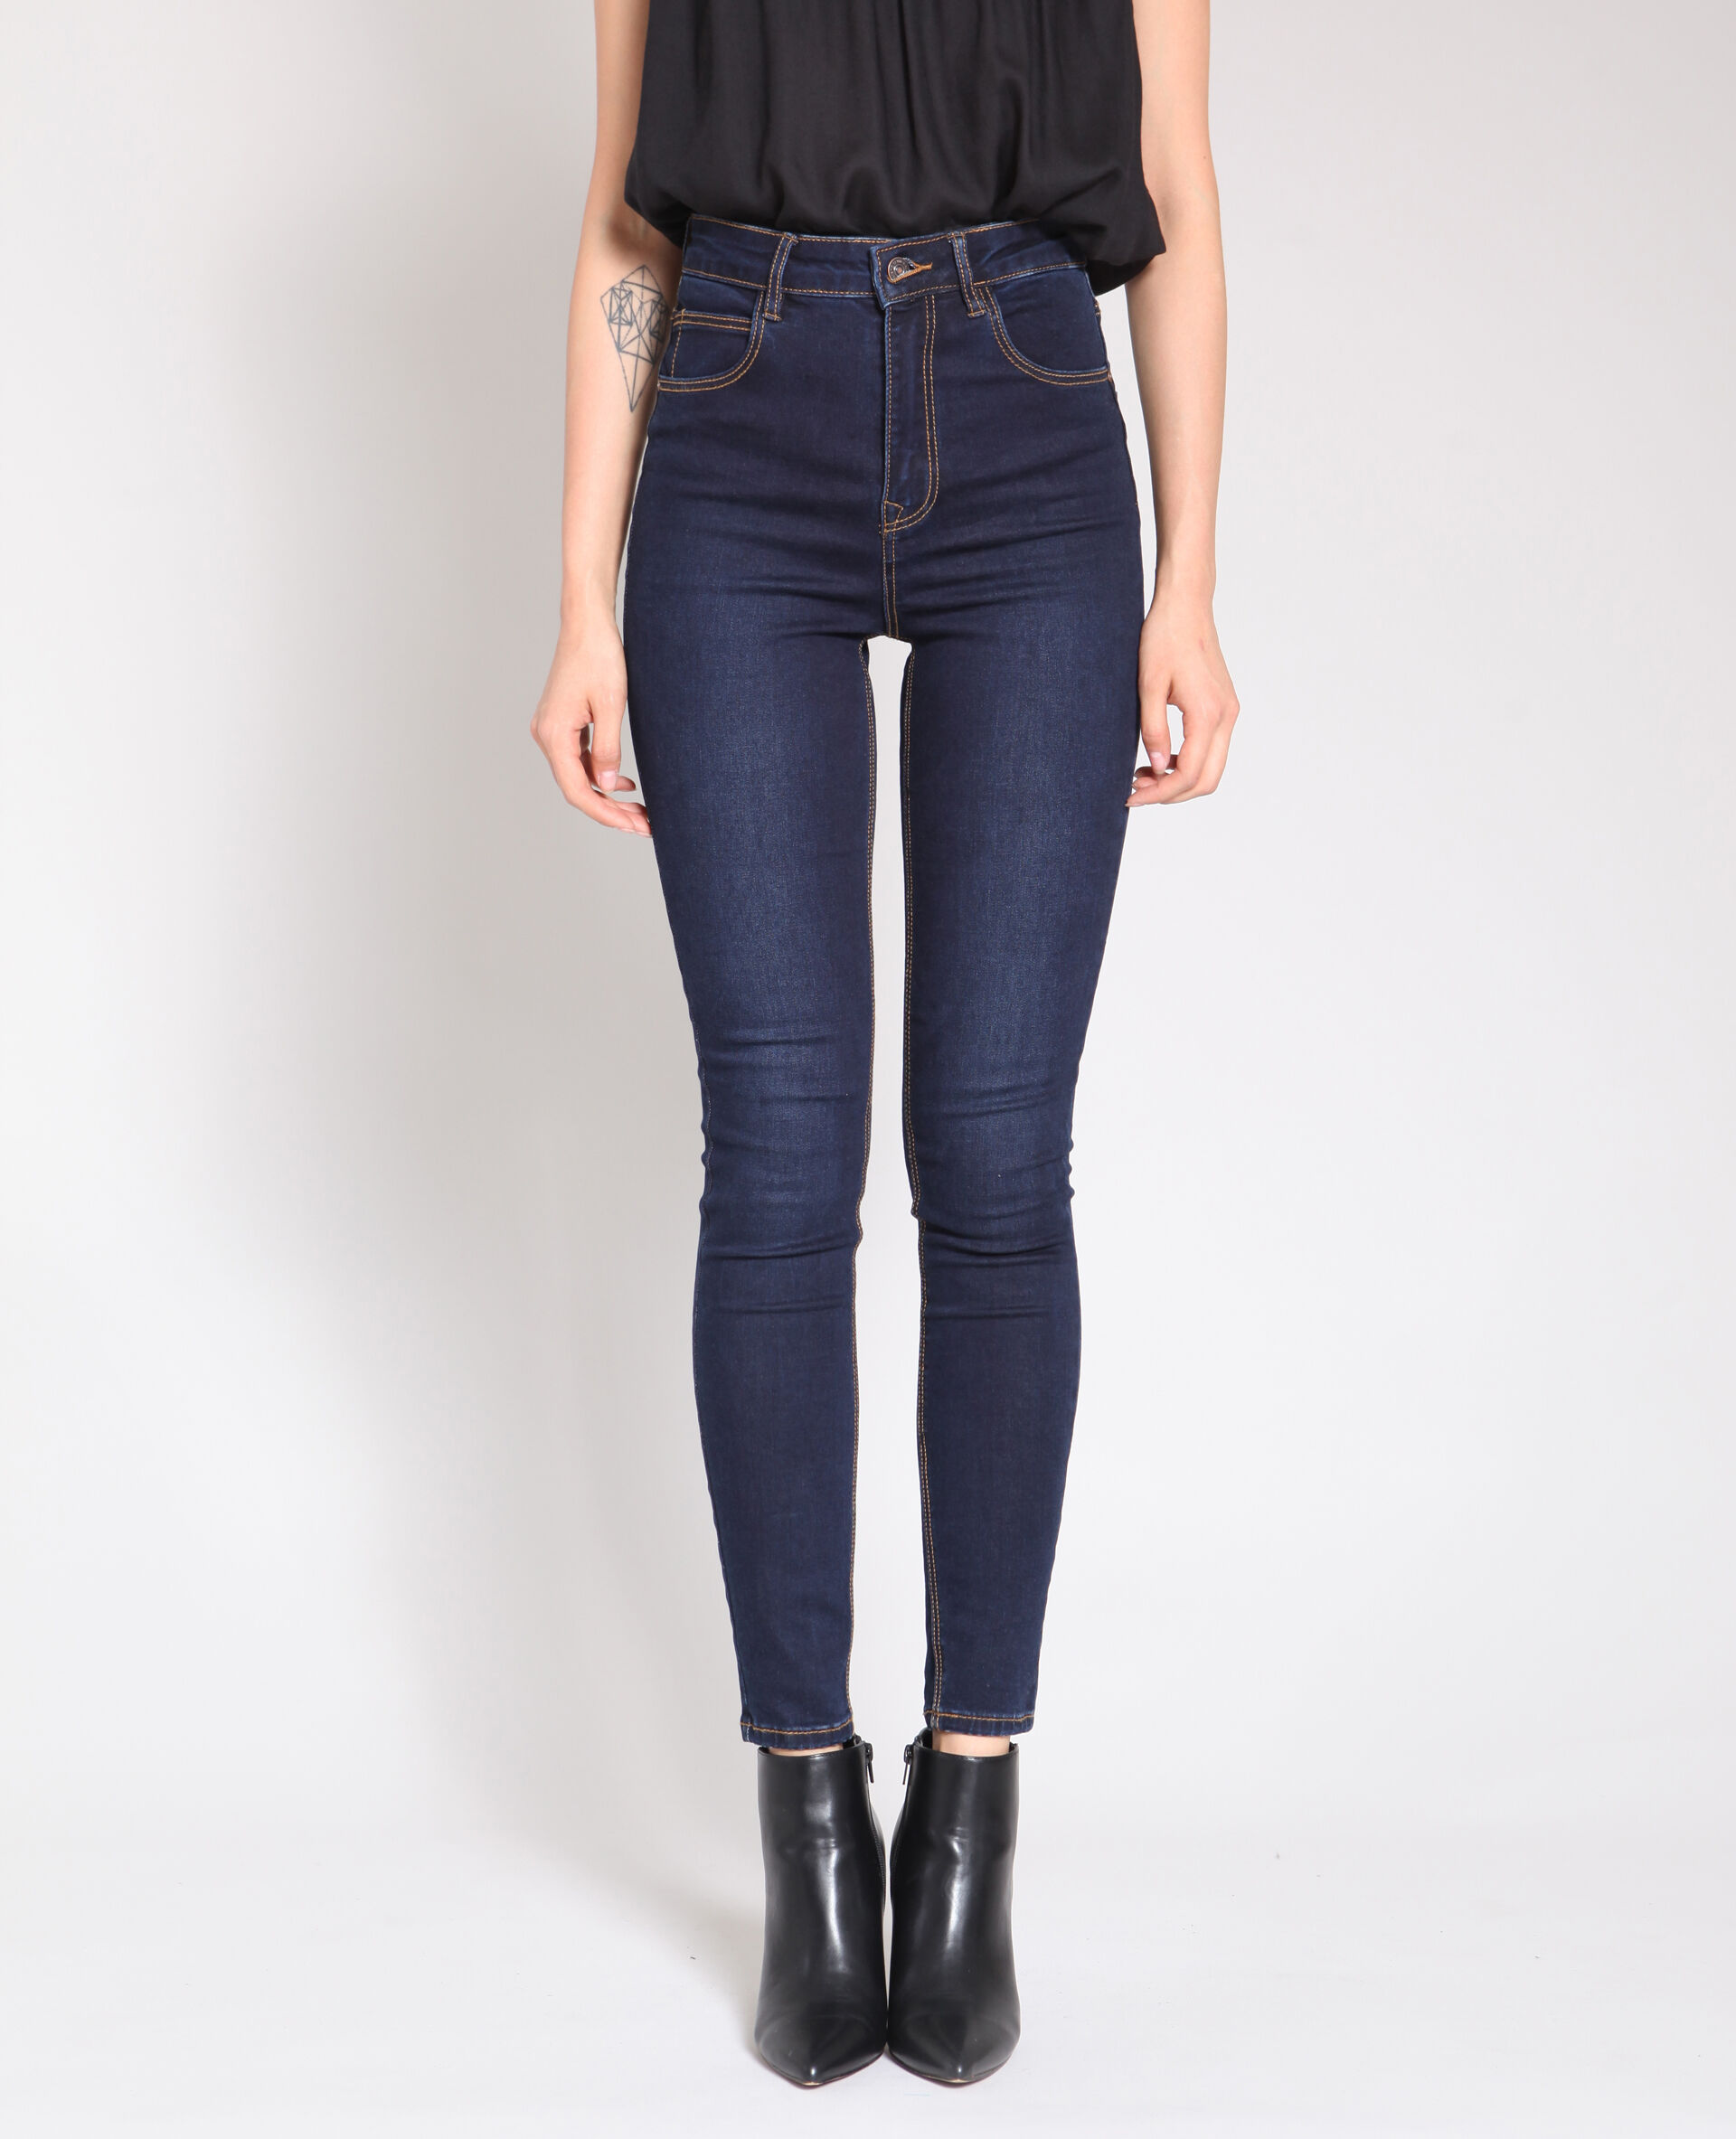 Jean femme coupe large taille haute